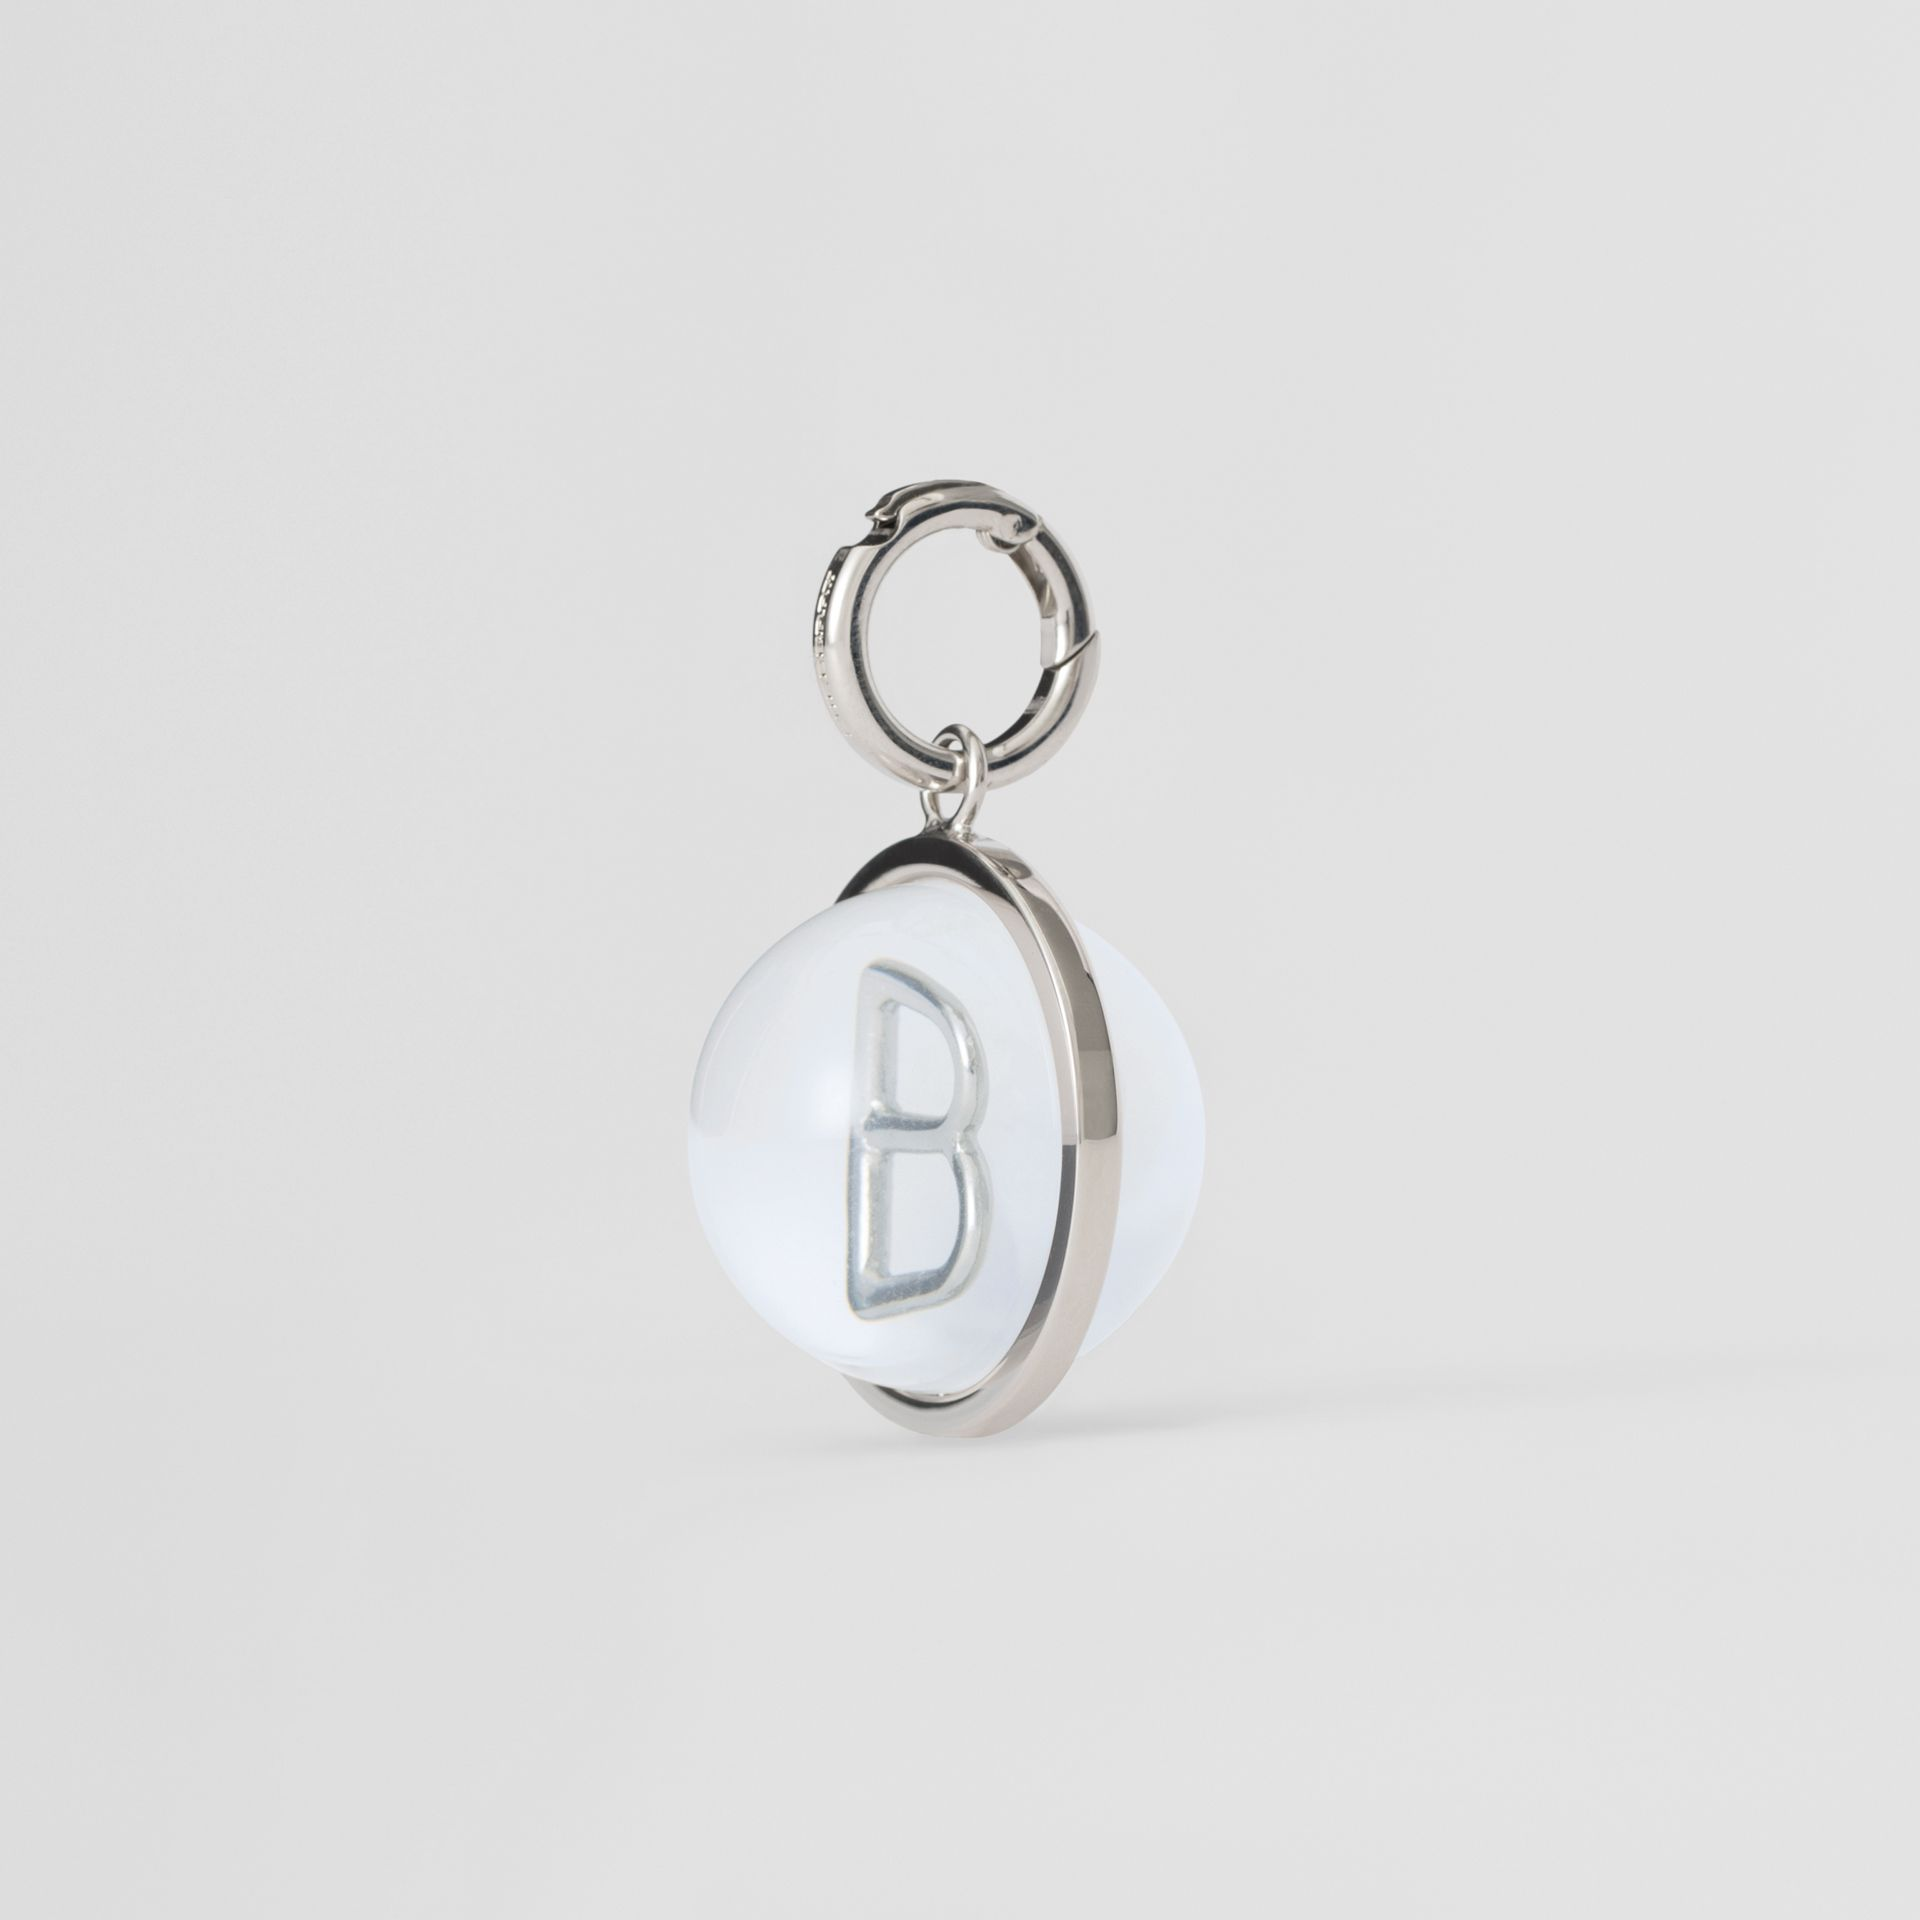 Marbled Resin 'B' Alphabet Charm in Palladio/nacre - Women | Burberry United Kingdom - gallery image 4